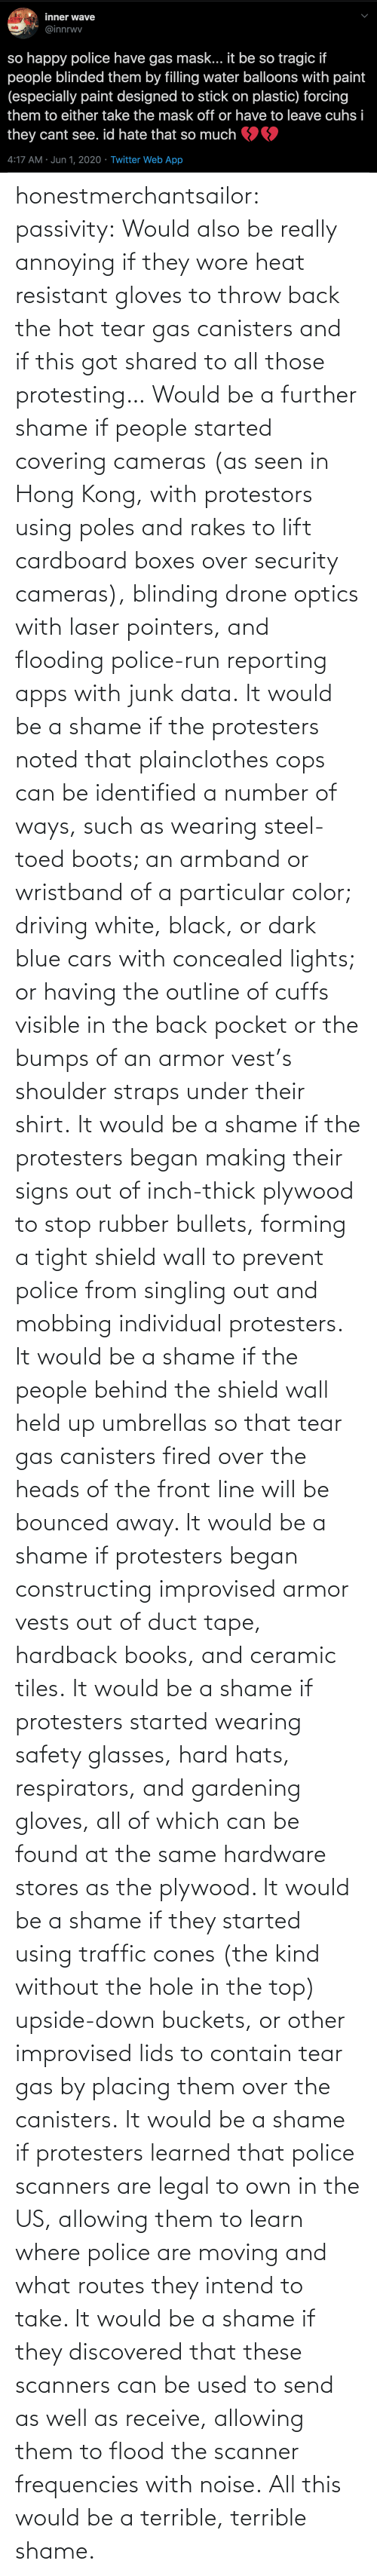 own: honestmerchantsailor:  passivity: Would also be really annoying if they wore heat resistant gloves to throw back the hot tear gas canisters and if this got shared to all those protesting… Would be a further shame if people started covering cameras (as seen in Hong Kong, with protestors using poles and rakes to lift cardboard boxes over security cameras), blinding drone optics with laser pointers, and flooding police-run reporting apps with junk data. It would be a shame if the protesters noted that plainclothes cops can be identified a number of ways, such as wearing steel-toed boots; an armband or wristband of a particular color; driving white, black, or dark blue cars with concealed lights; or having the outline of cuffs visible in the back pocket or the bumps of an armor vest's shoulder straps under their shirt. It would be a shame if the protesters began making their signs out of inch-thick plywood to stop rubber bullets, forming a tight shield wall to prevent police from singling out and mobbing individual protesters. It would be a shame if the people behind the shield wall held up umbrellas so that tear gas canisters fired over the heads of the front line will be bounced away. It would be a shame if protesters began constructing improvised armor vests out of duct tape, hardback books, and ceramic tiles. It would be a shame if protesters started wearing safety glasses, hard hats, respirators, and gardening gloves, all of which can be found at the same hardware stores as the plywood. It would be a shame if they started using traffic cones (the kind without the hole in the top) upside-down buckets, or other improvised lids to contain tear gas by placing them over the canisters. It would be a shame if protesters learned that police scanners are legal to own in the US, allowing them to learn where police are moving and what routes they intend to take. It would be a shame if they discovered that these scanners can be used to send as well as receive, allowing them to flood the scanner frequencies with noise. All this would be a terrible, terrible shame.